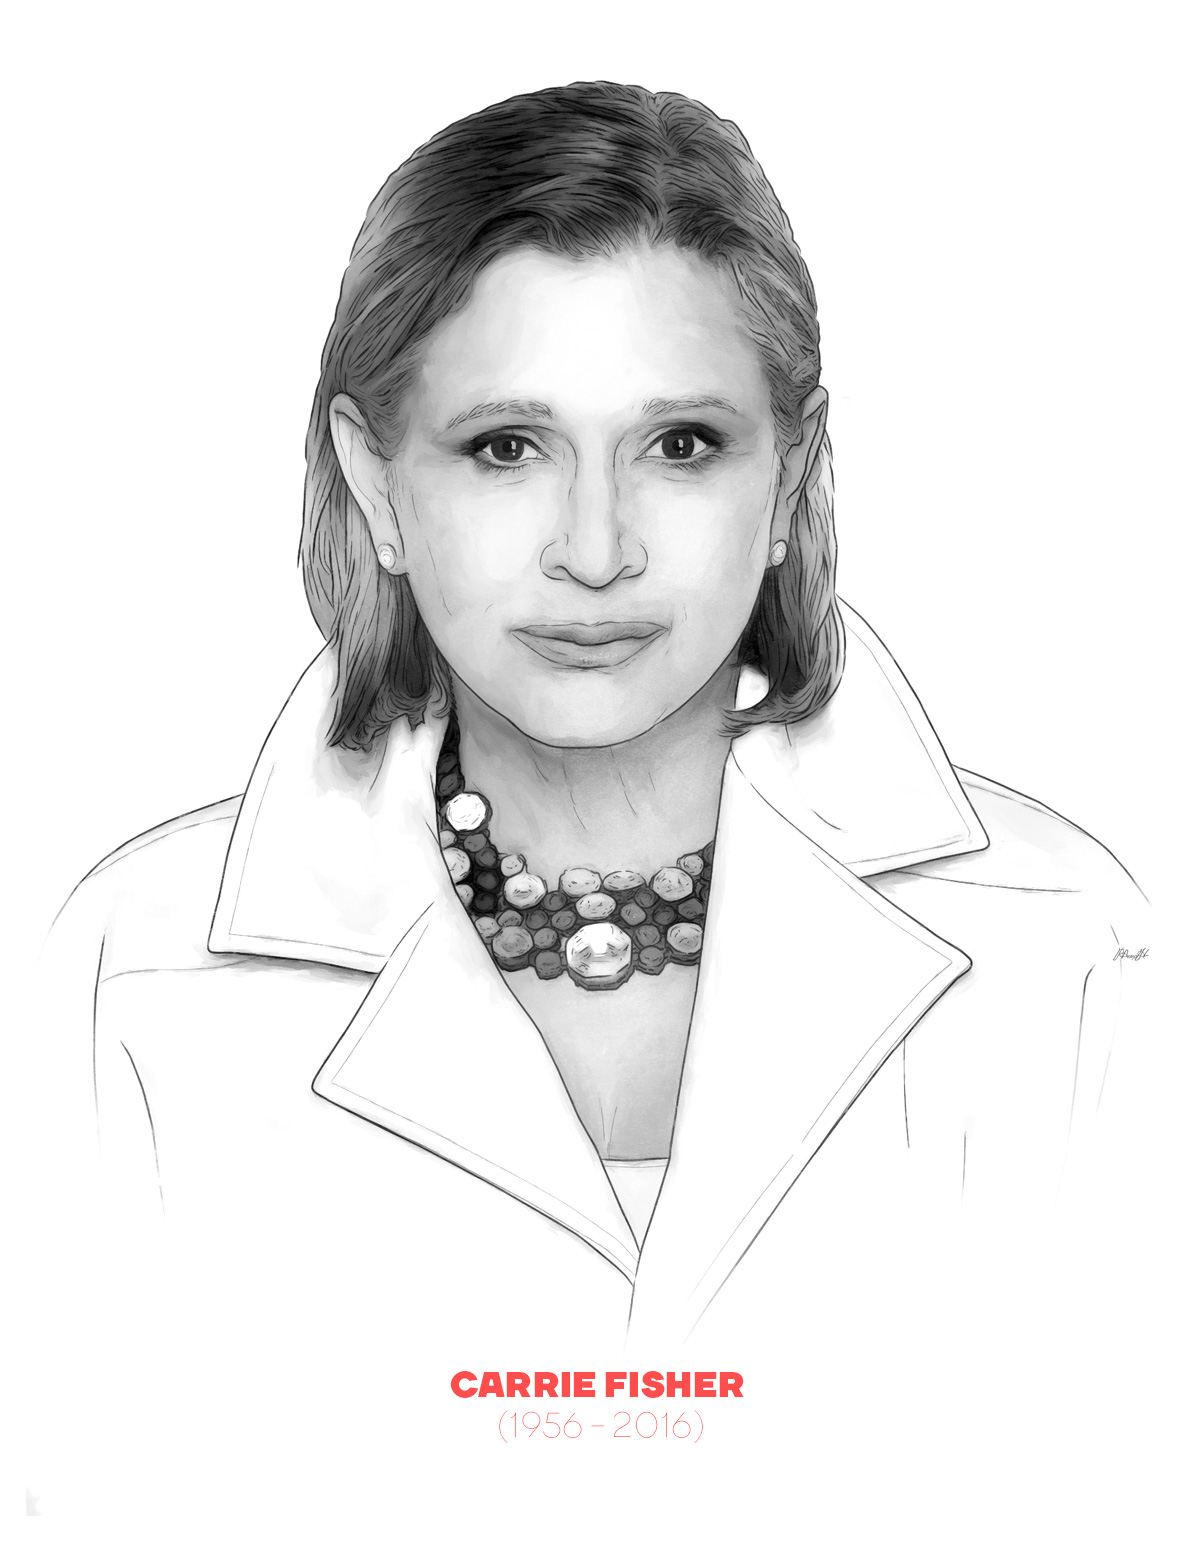 Carrie Fisher portrait from People of 2016 series, by Max Hancock